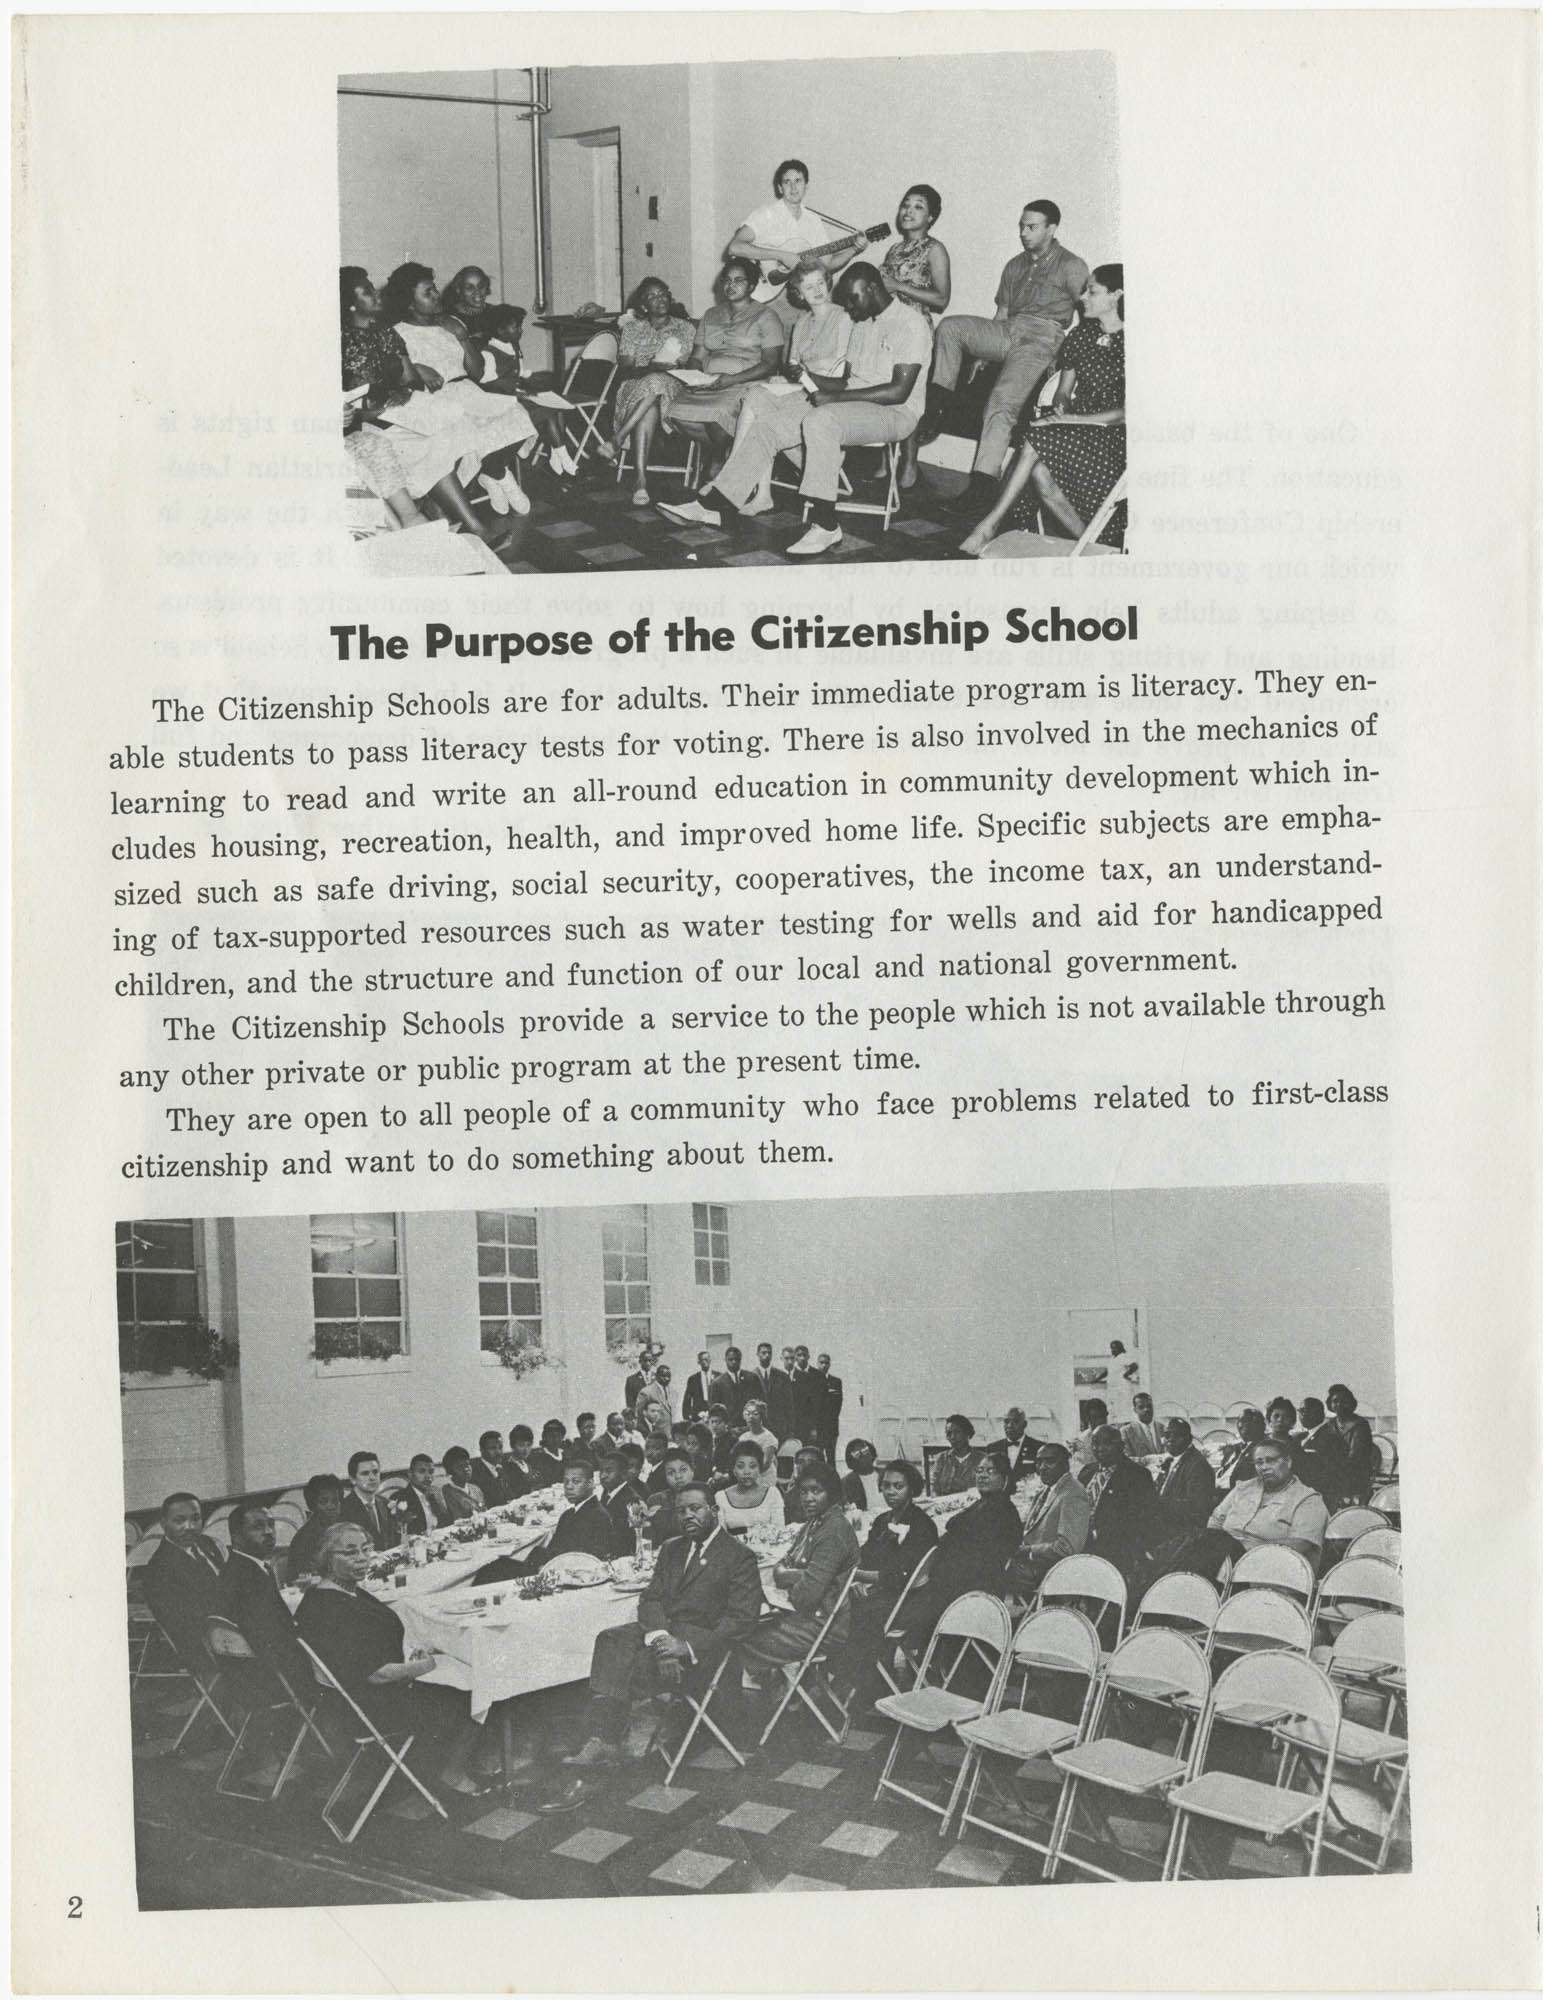 Southern Christian Leadership Conference Citizenship School Workbook, Page 2